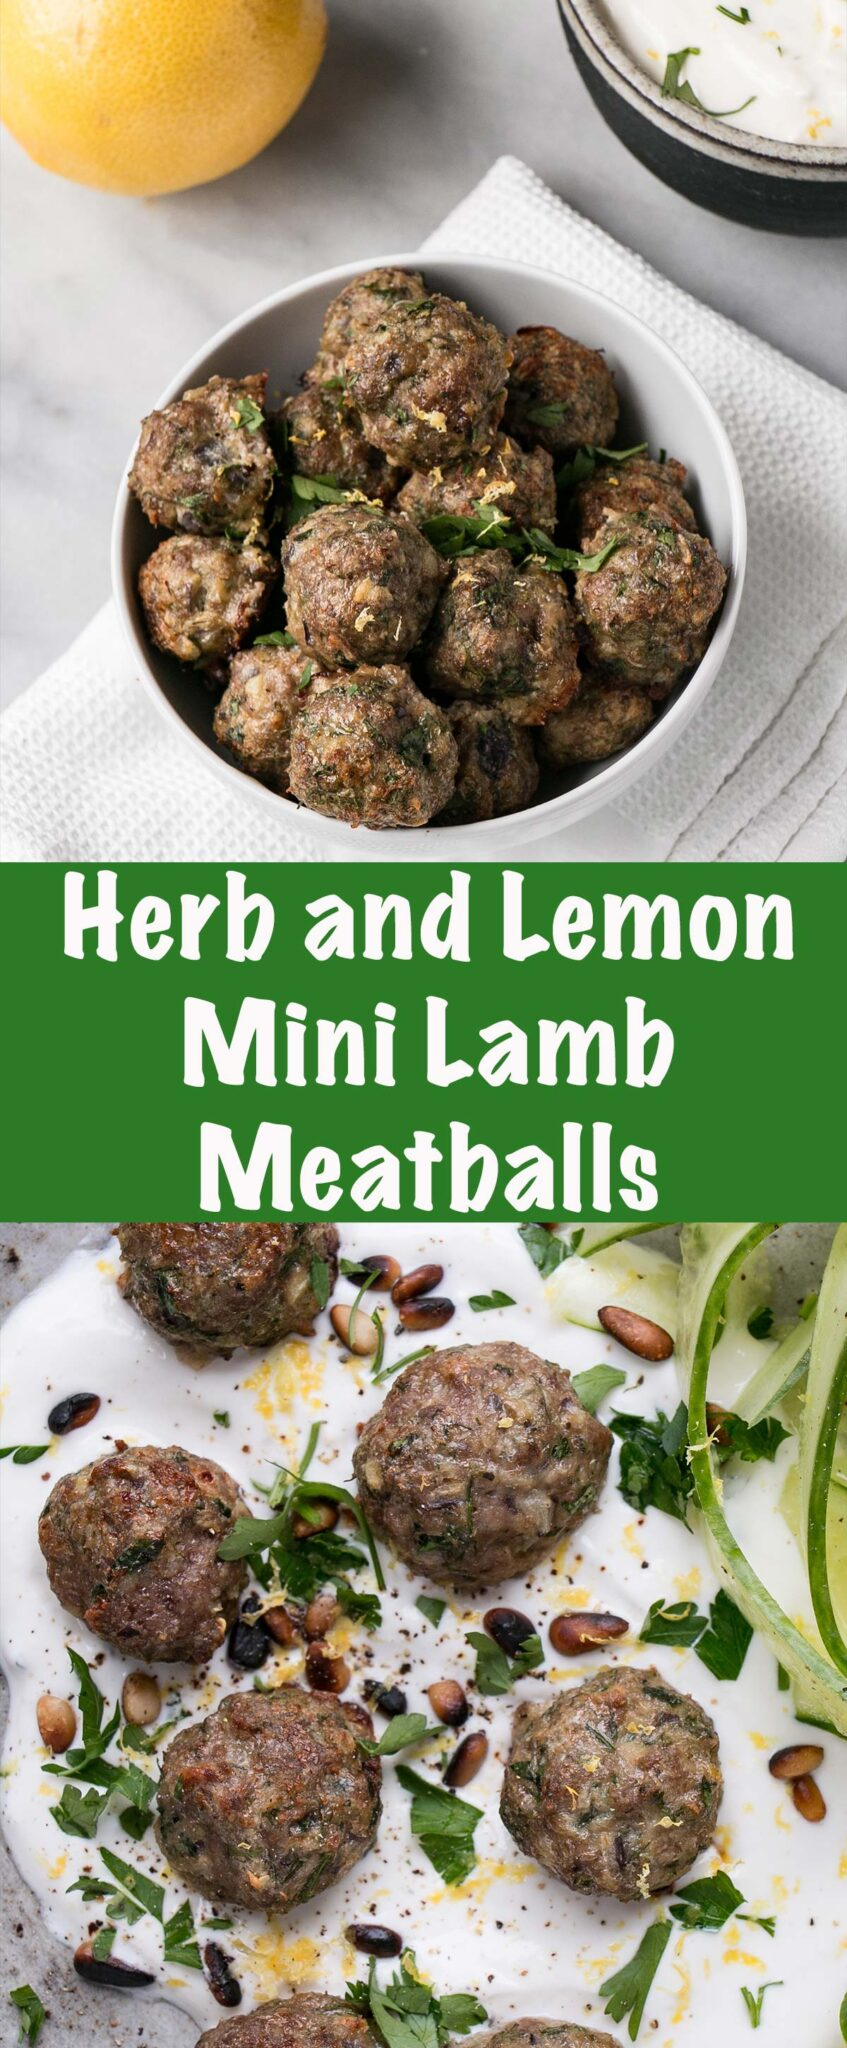 Mini Lamb Meatballs are a quick and easy way to bake juicy and tasty meatballs for dinner! Serve with yogurt and cucumber salad for a refreshing supper! #meatballs #lambs #dinner #weekdaydinner